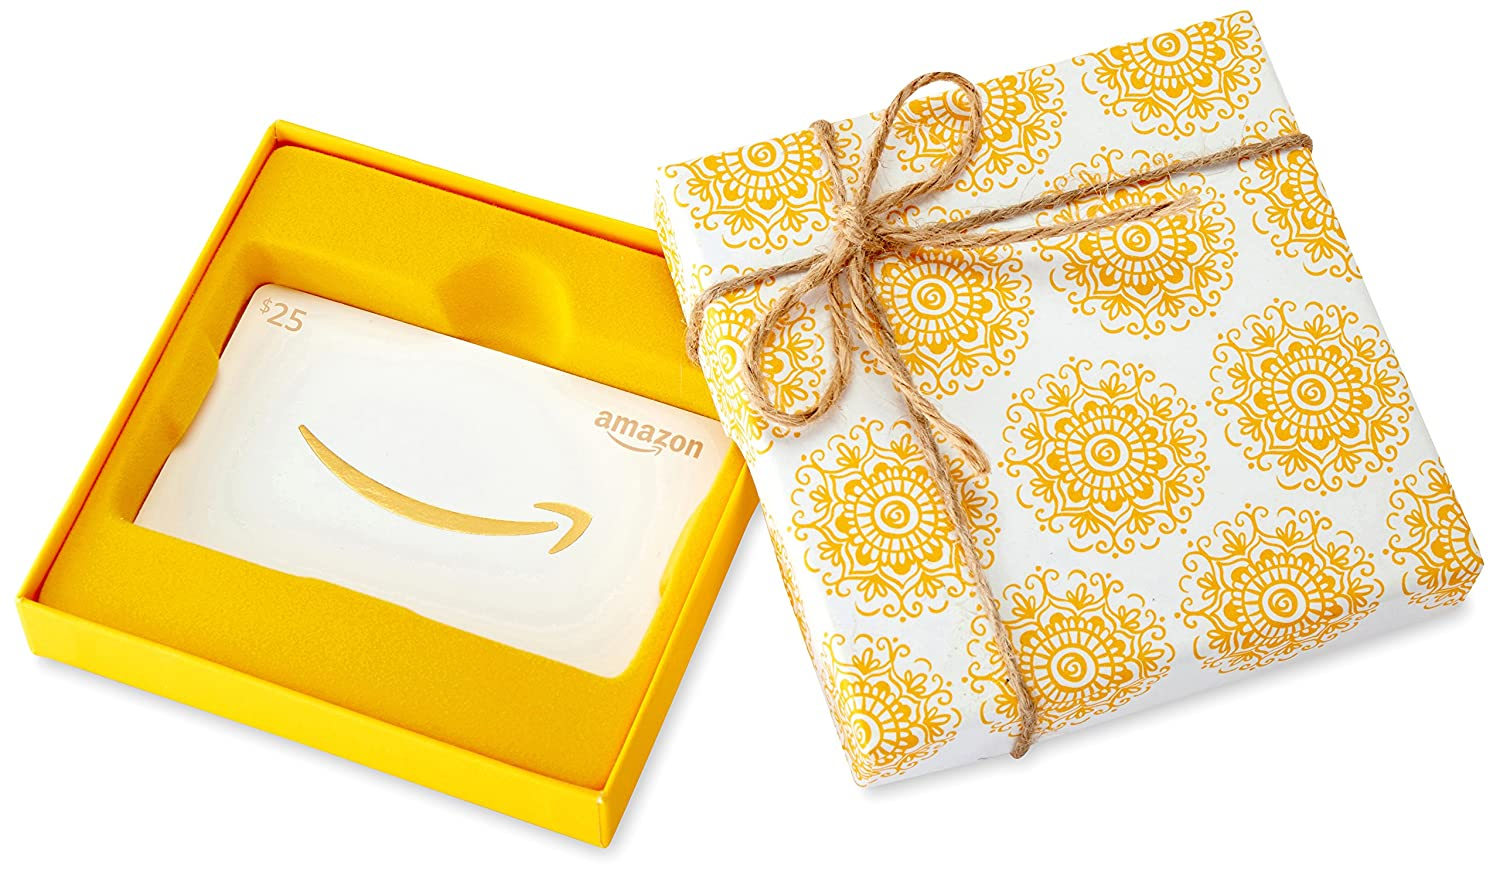 Amazon.ca Gift Card in a Medallion Box Amazon.com.ca Inc. Fixed